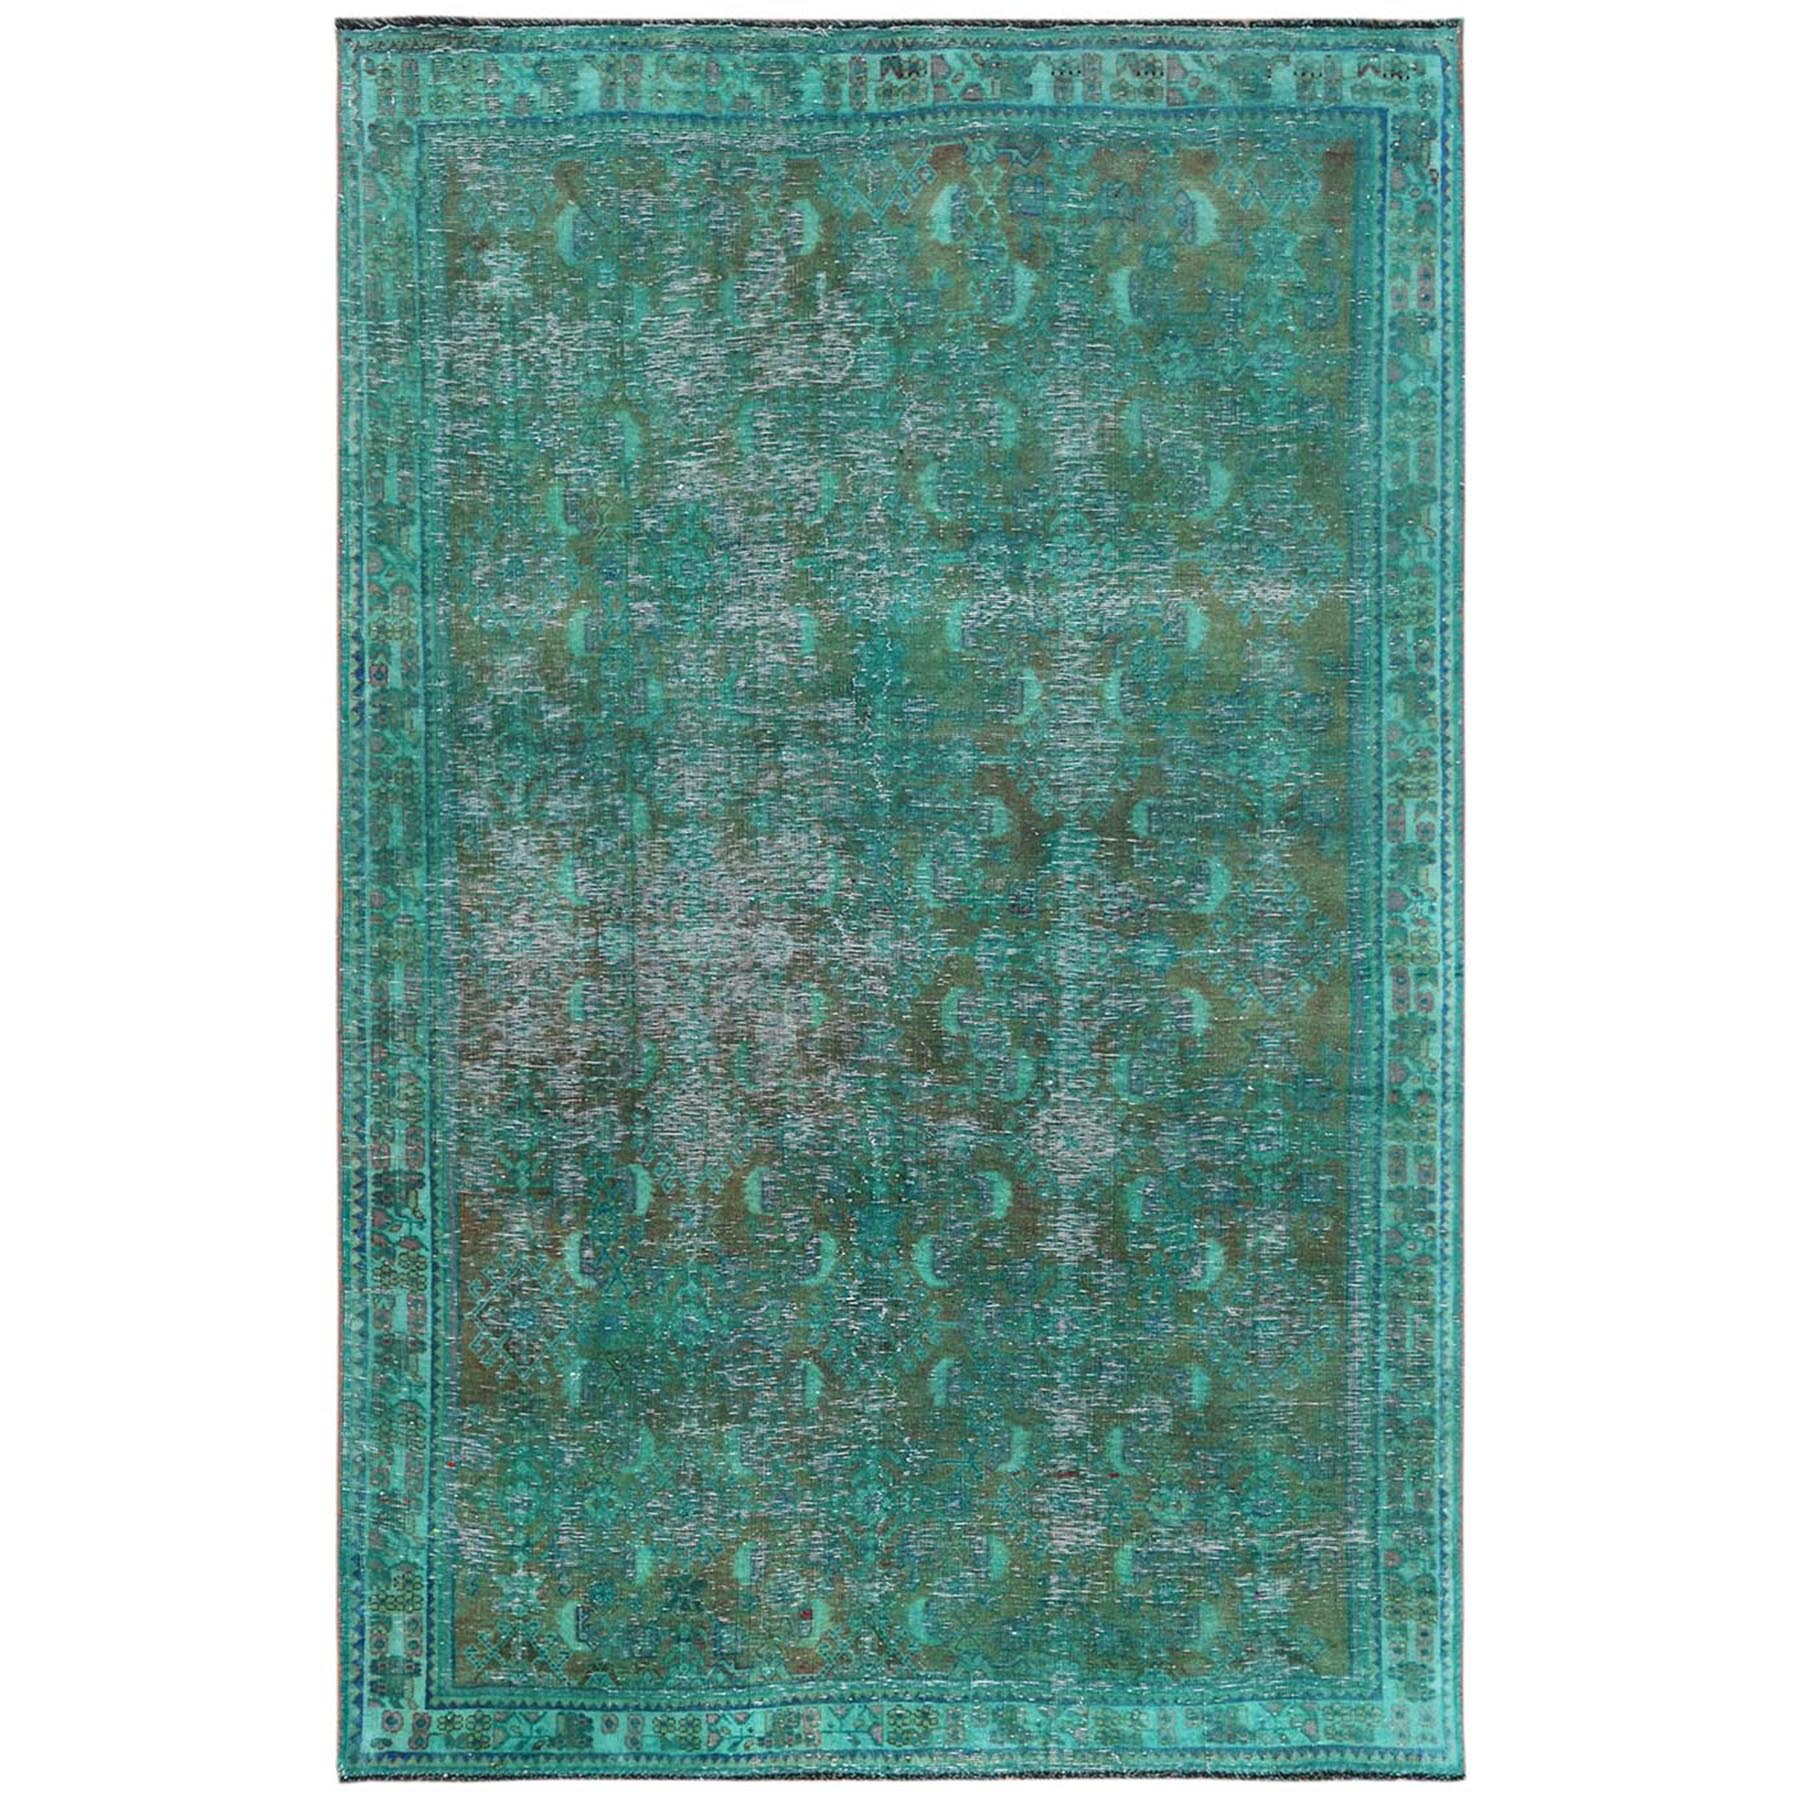 Fetneh Collection And Vintage Overdyed Collection Hand Knotted Green Rug No: 1122154